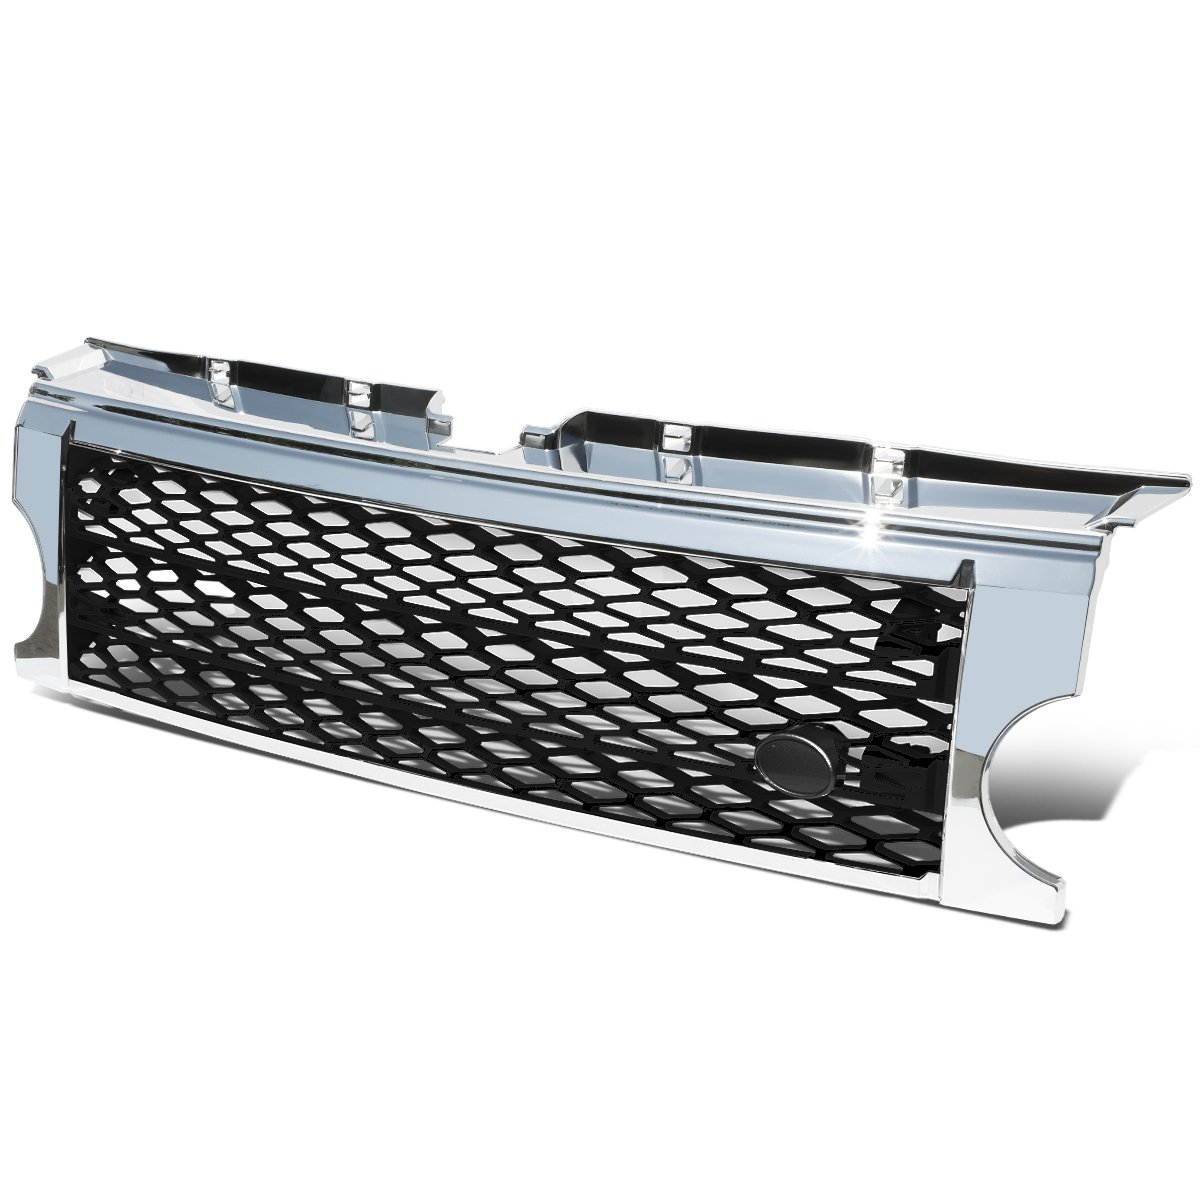 For Land Rover ABS Plastic Black Mesh Chrome Front Bumper Grille - Discovery III LR3 Auto Dynasty GRA-DSCV-0509-CMBK